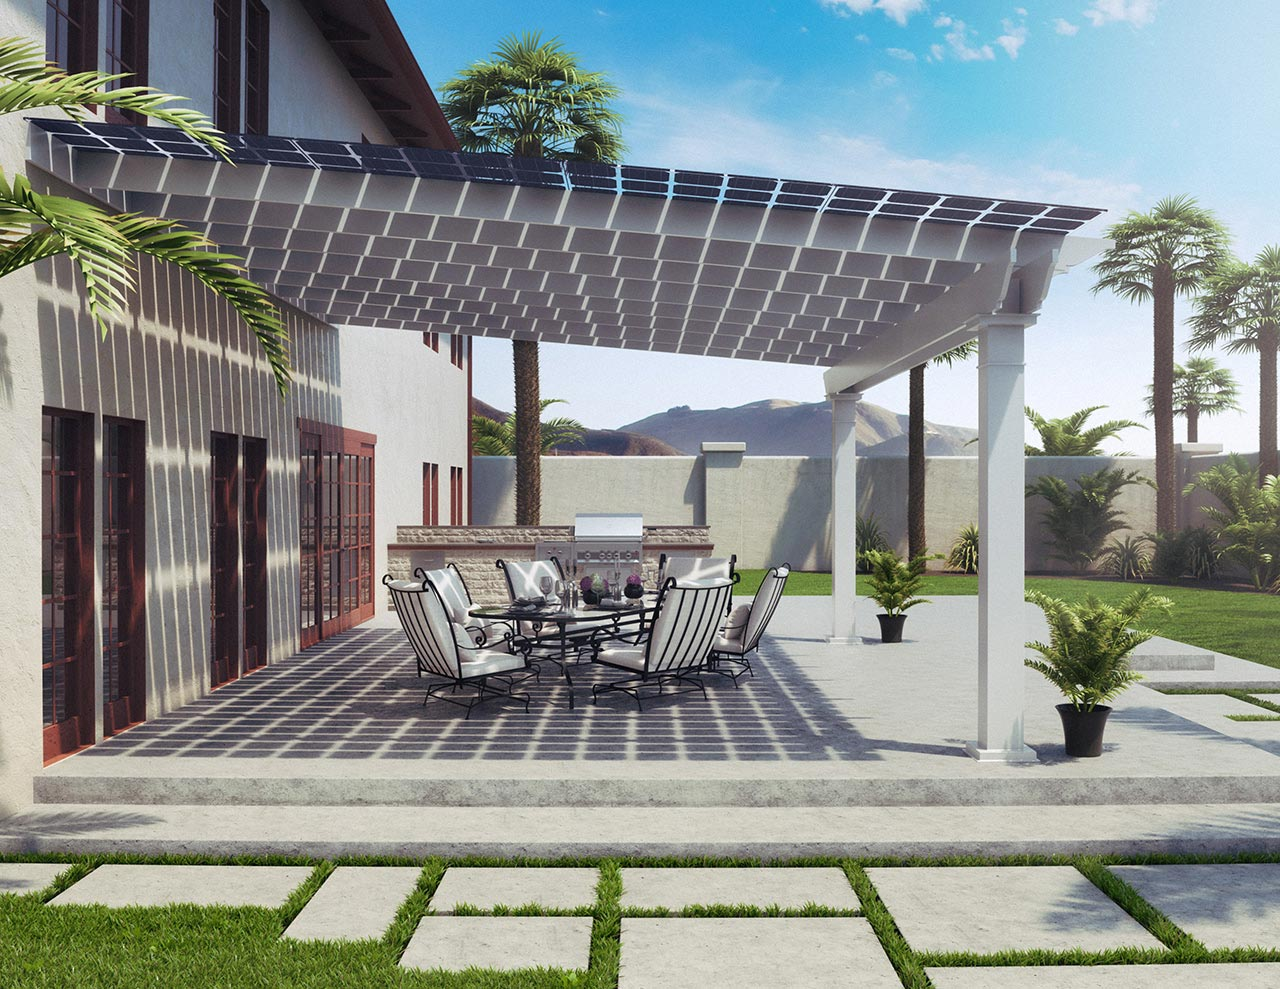 Side view of backyard patio under an awning with solar panels